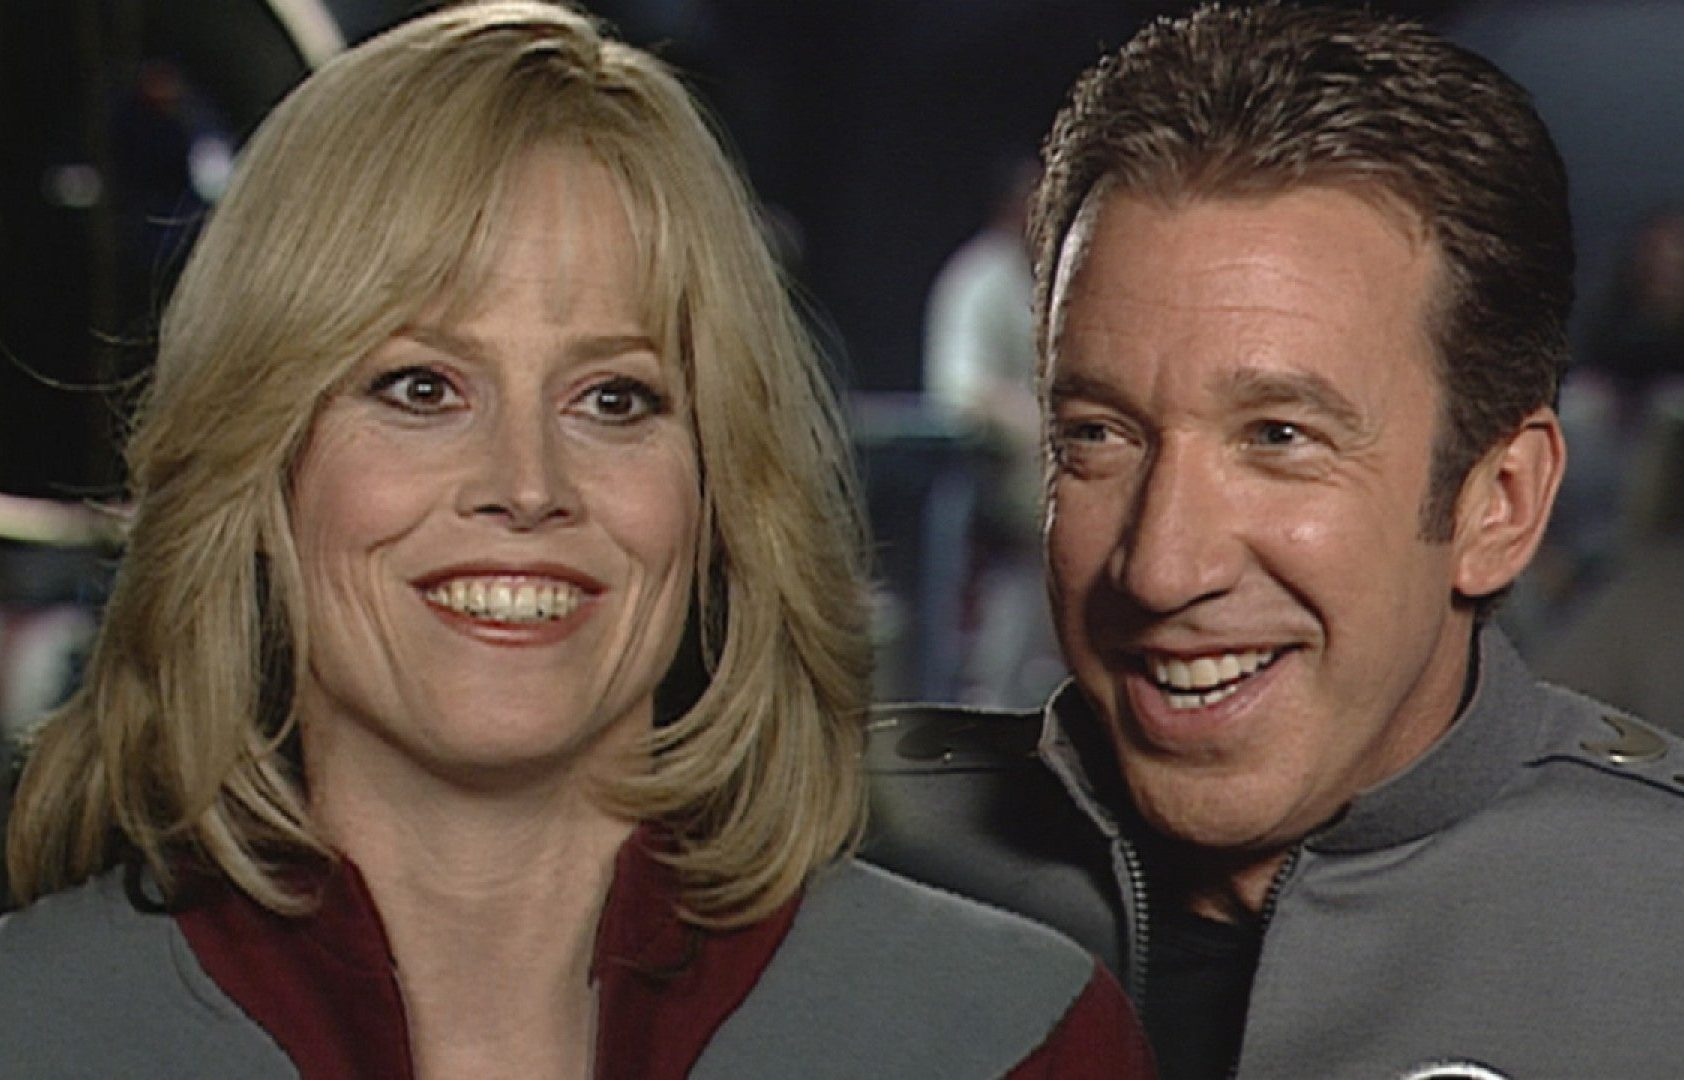 g15 e1619007039698 30 Spacefaring Facts About Hilarious Sci-Fi Comedy Film Galaxy Quest